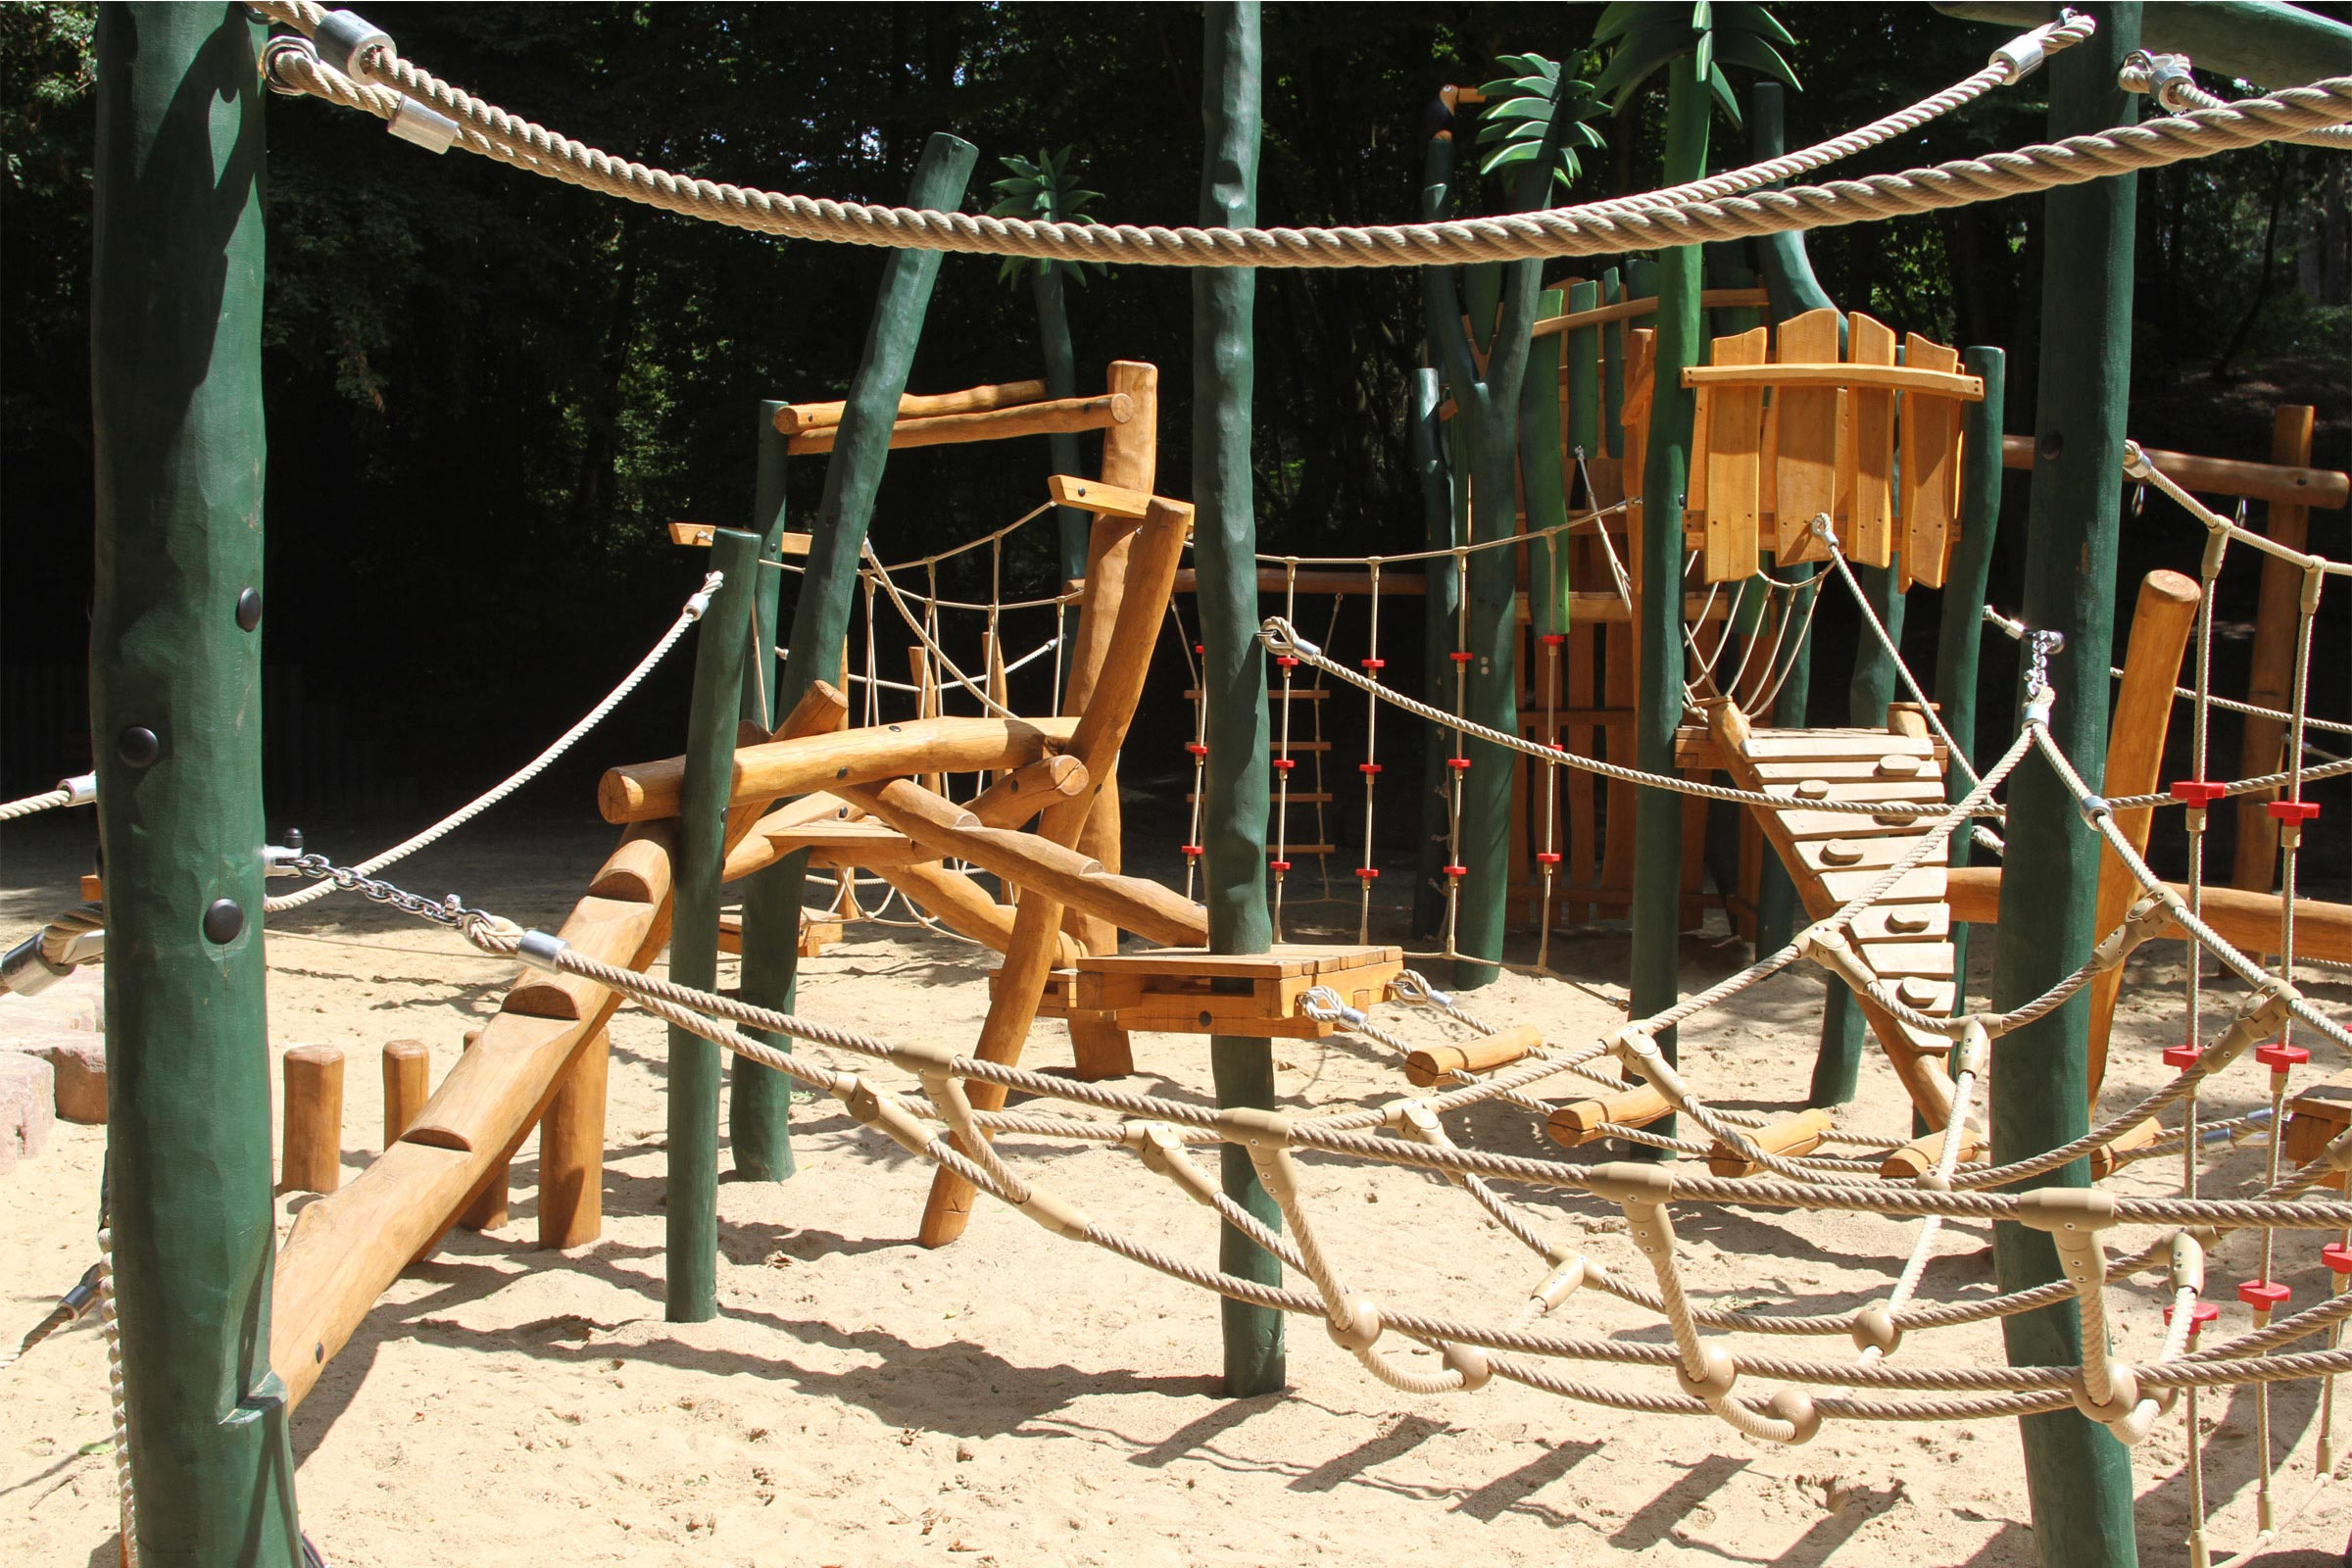 Kinderspielplatz Wiesental in Bochum